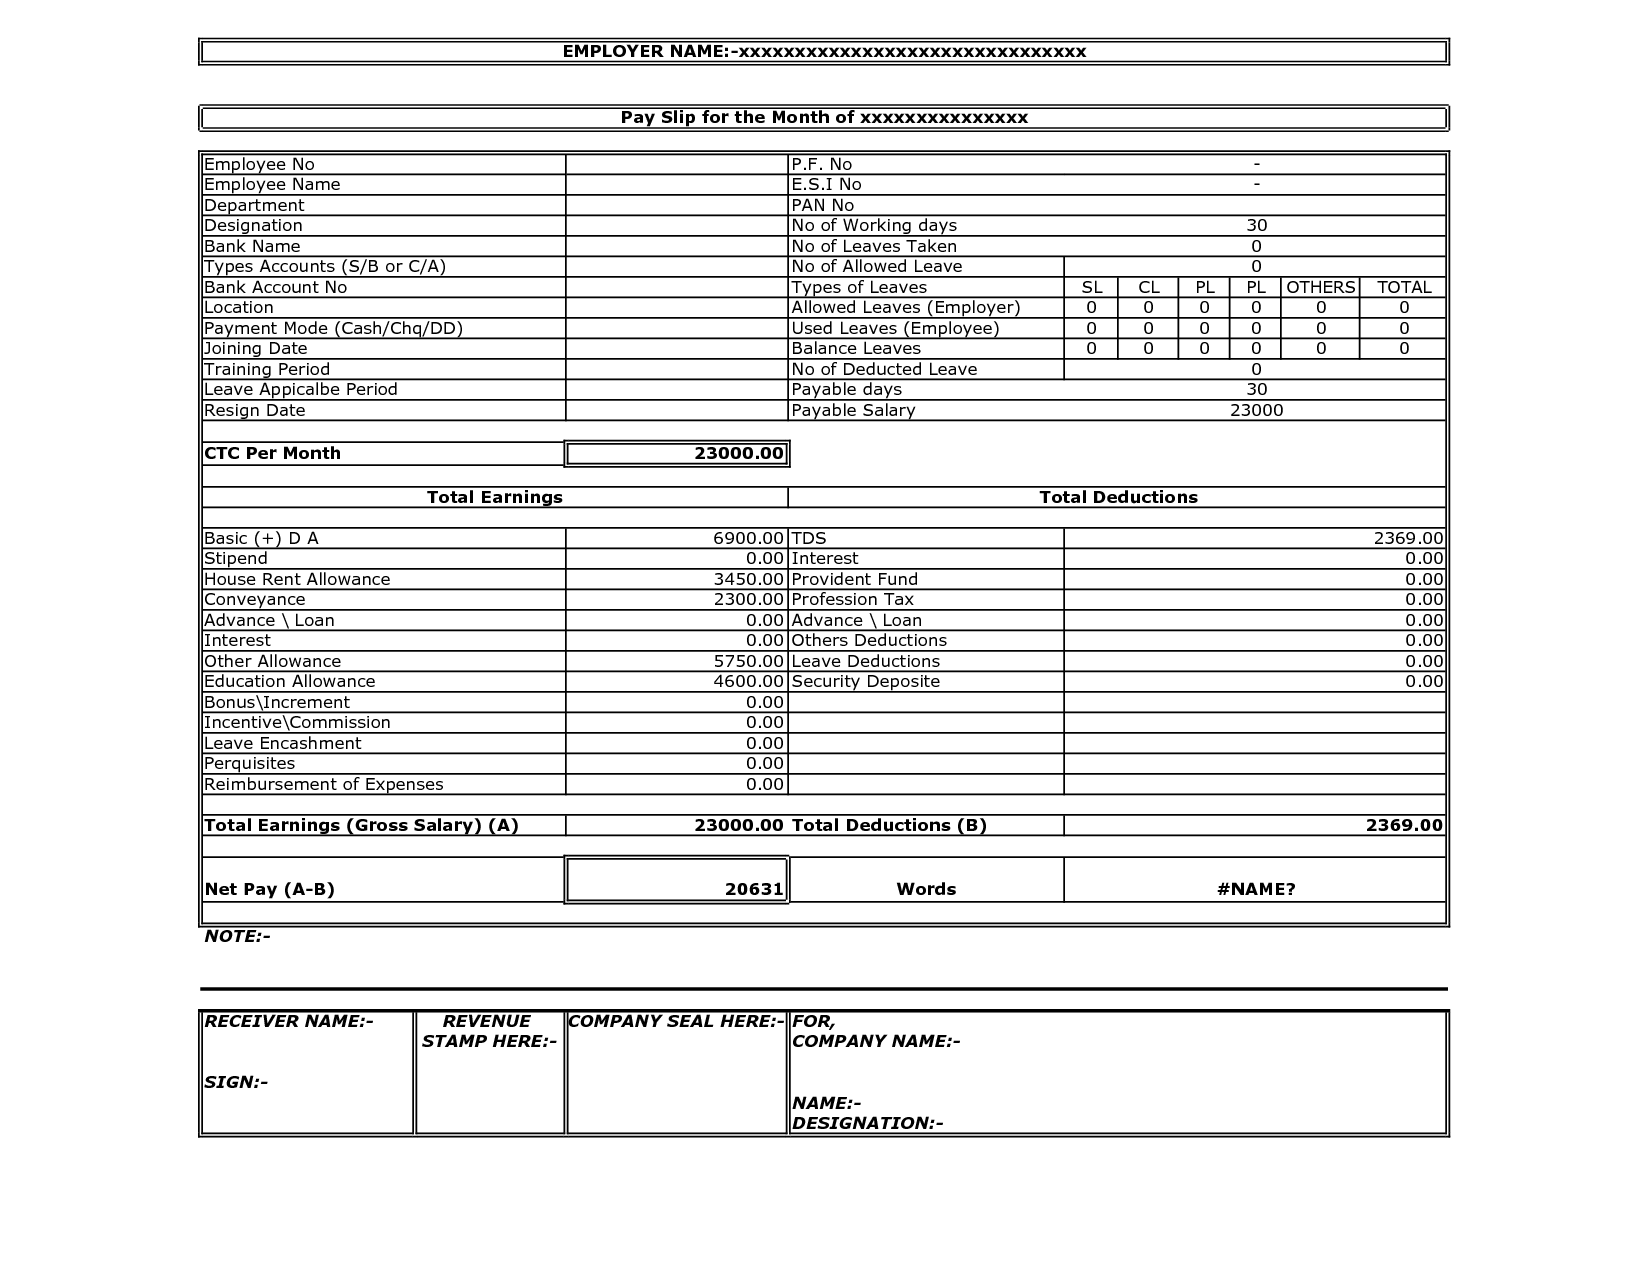 payslip nuq pty ltd wage slip template excel get salary slip – Salary Slip Format for Contract Employee